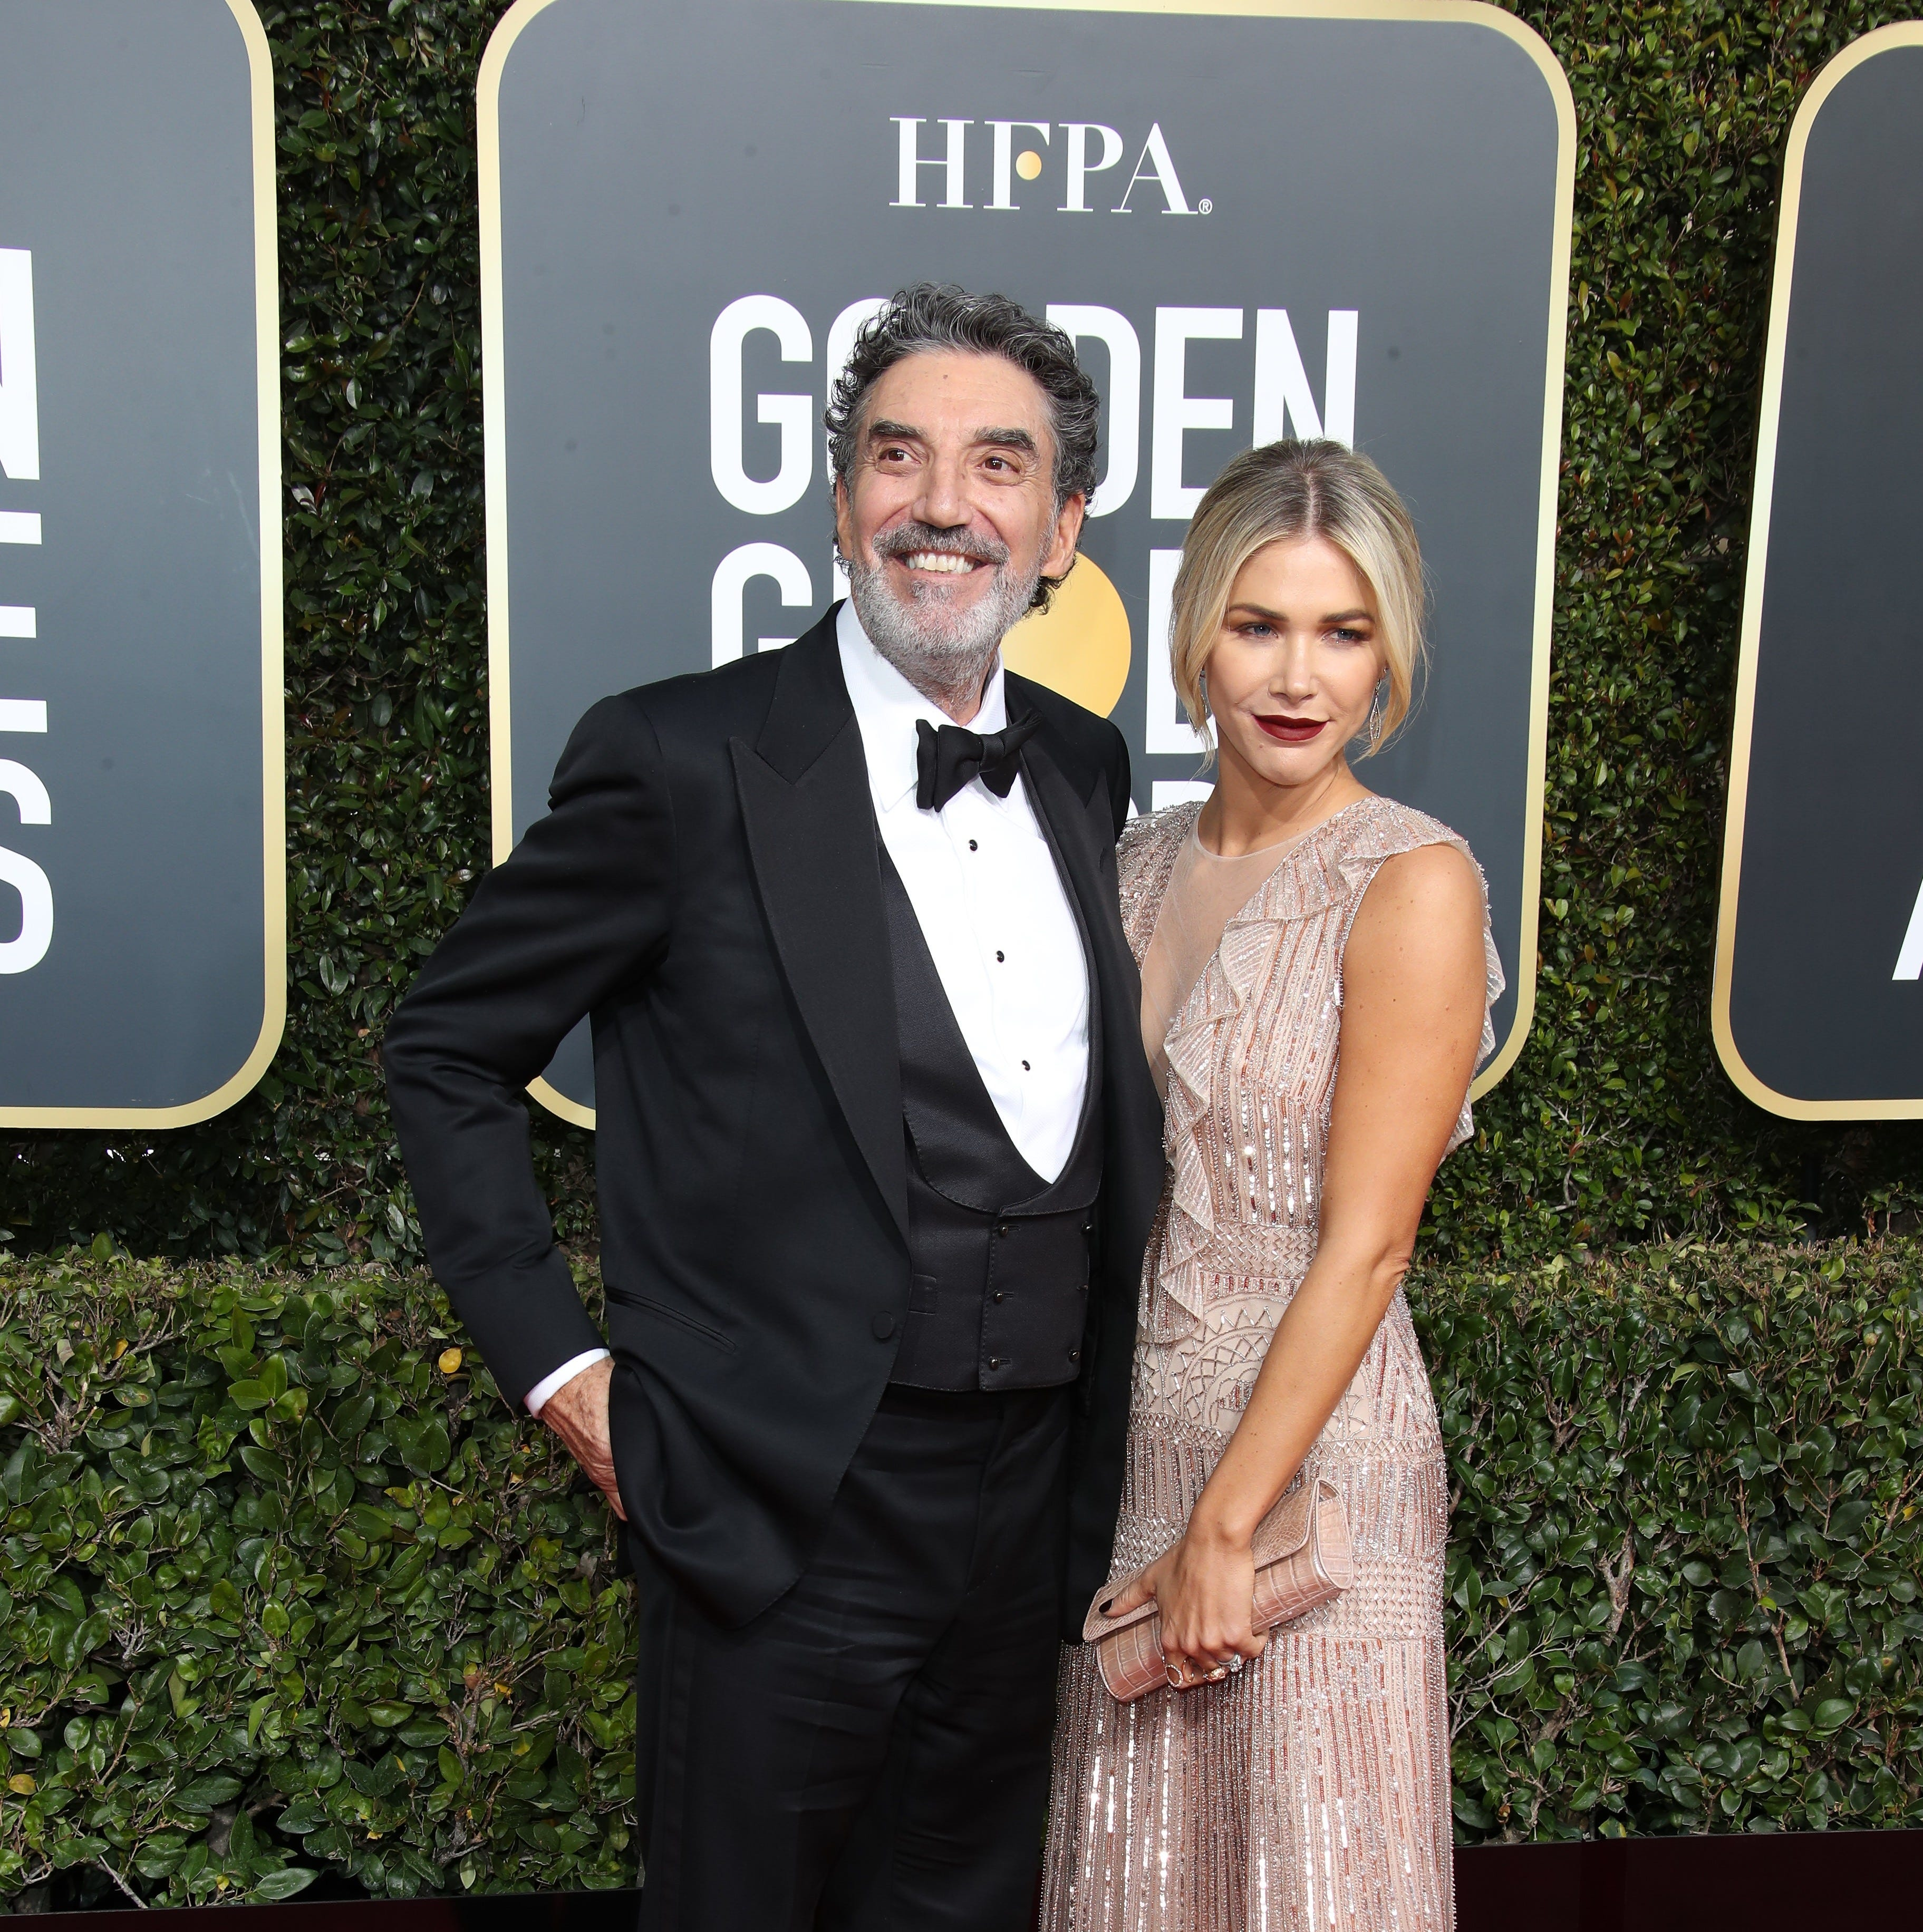 Jan 6, 2019; Beverly Hills, CA, USA; Chuck Lorre, left and Arielle Mandelson arrive at the 76th Golden Globe Awards at the Beverly Hilton. Mandatory Credit: Dan MacMedan-USA TODAY NETWORK (Via OlyDrop)